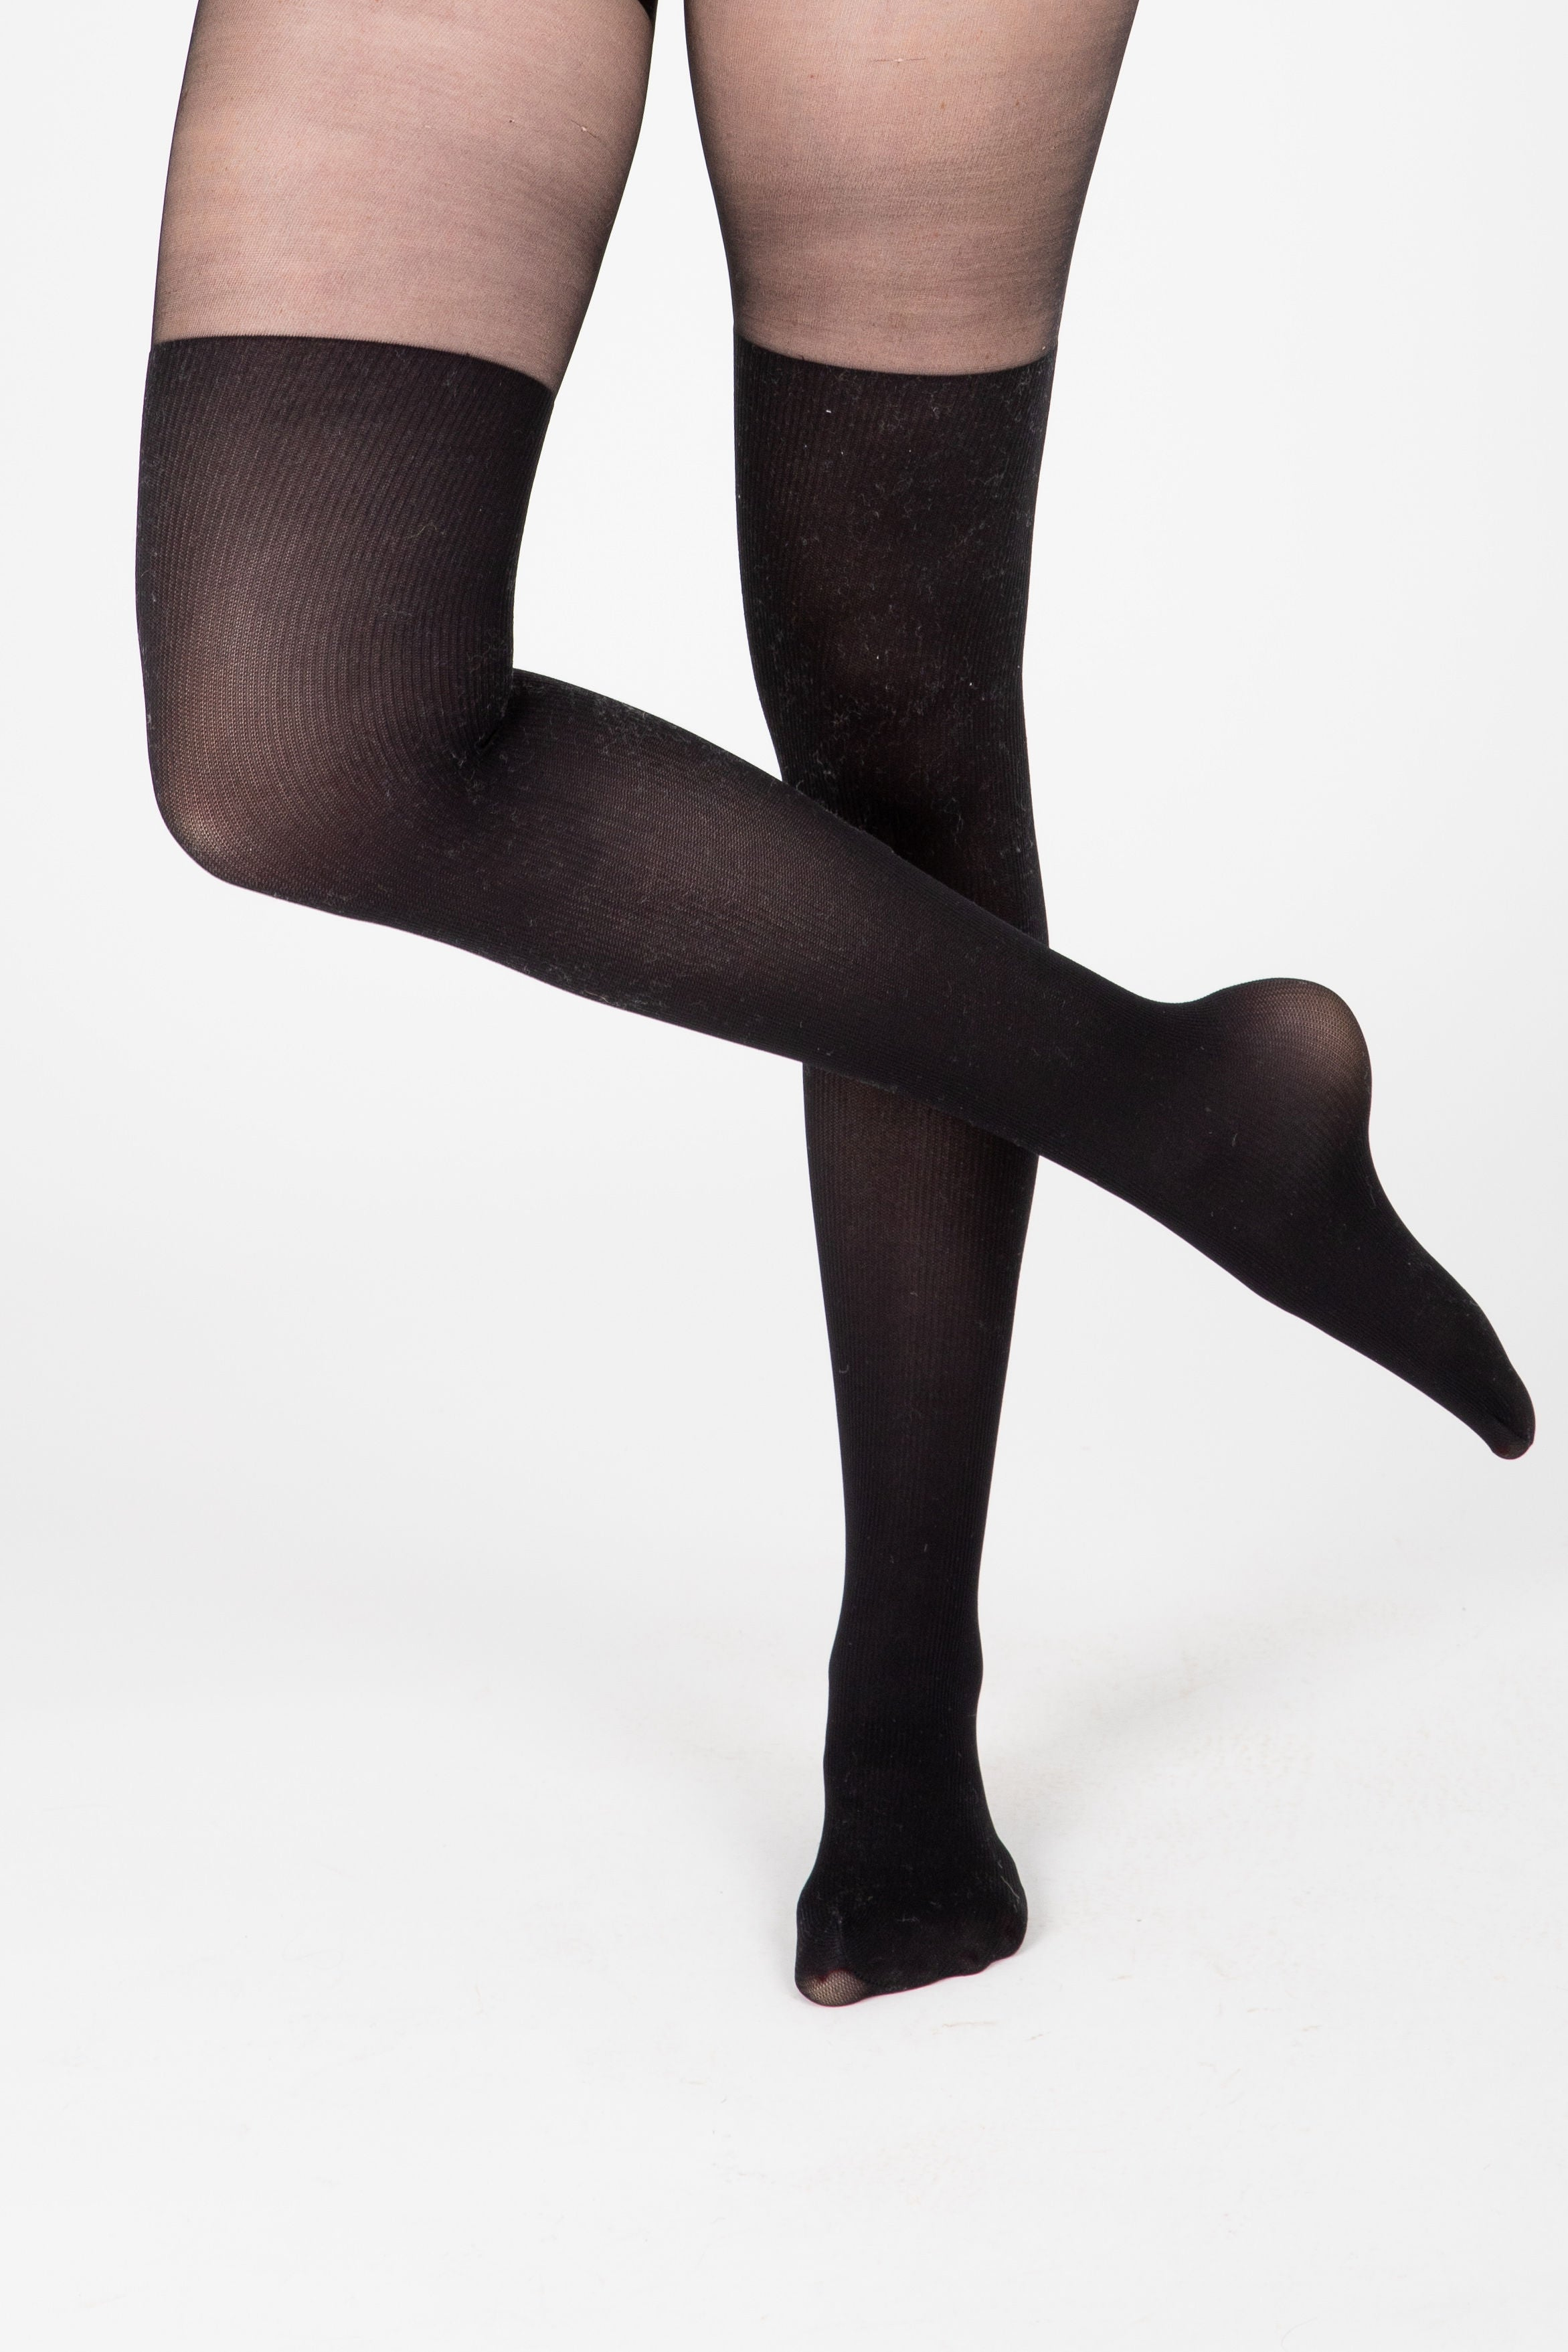 Over-The-Knee Contrast Tights in Black